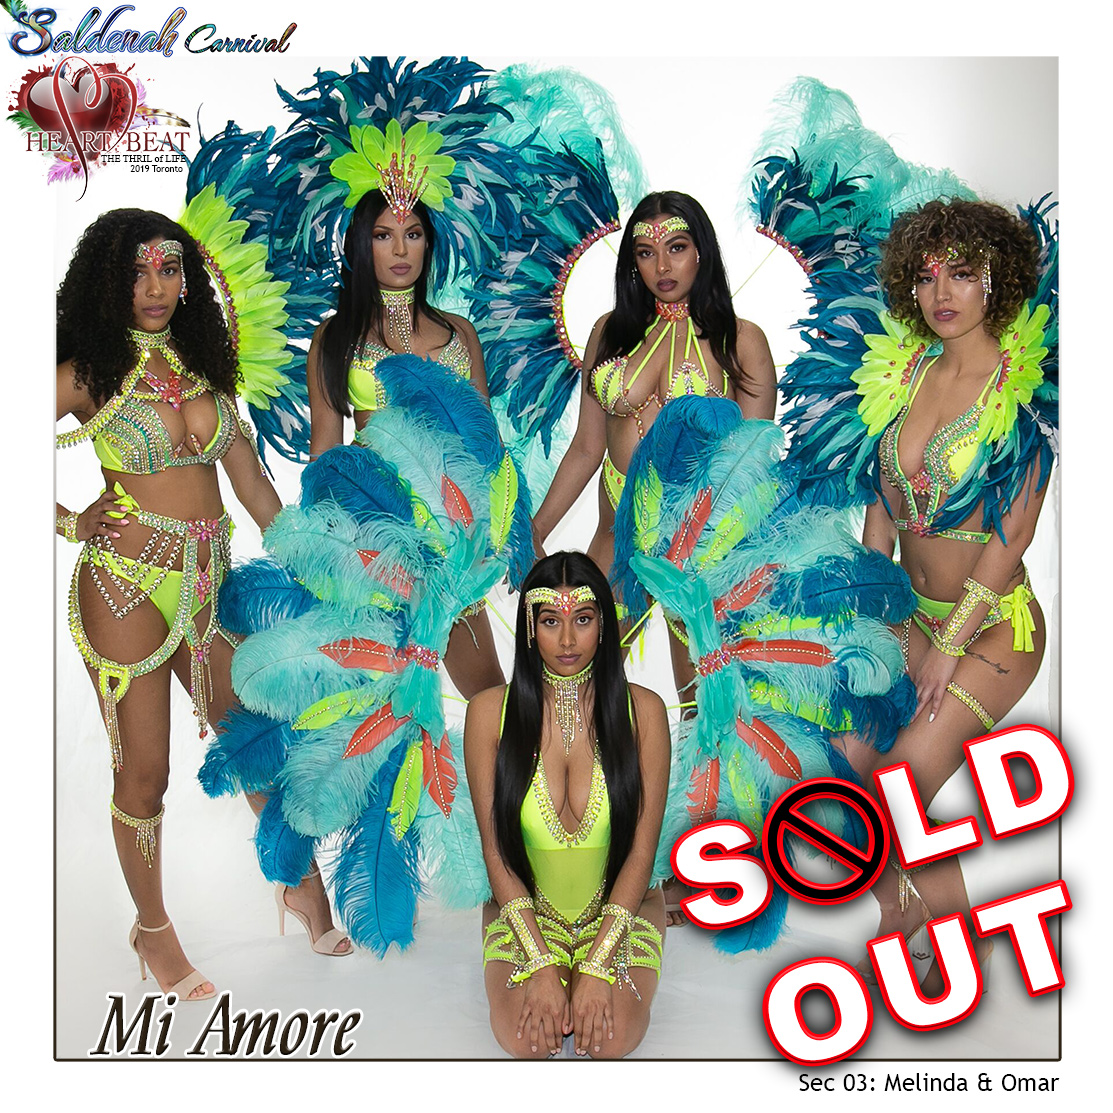 Saldenah Carnival 2019 - Section 3 Mi Amore SOLD OUT